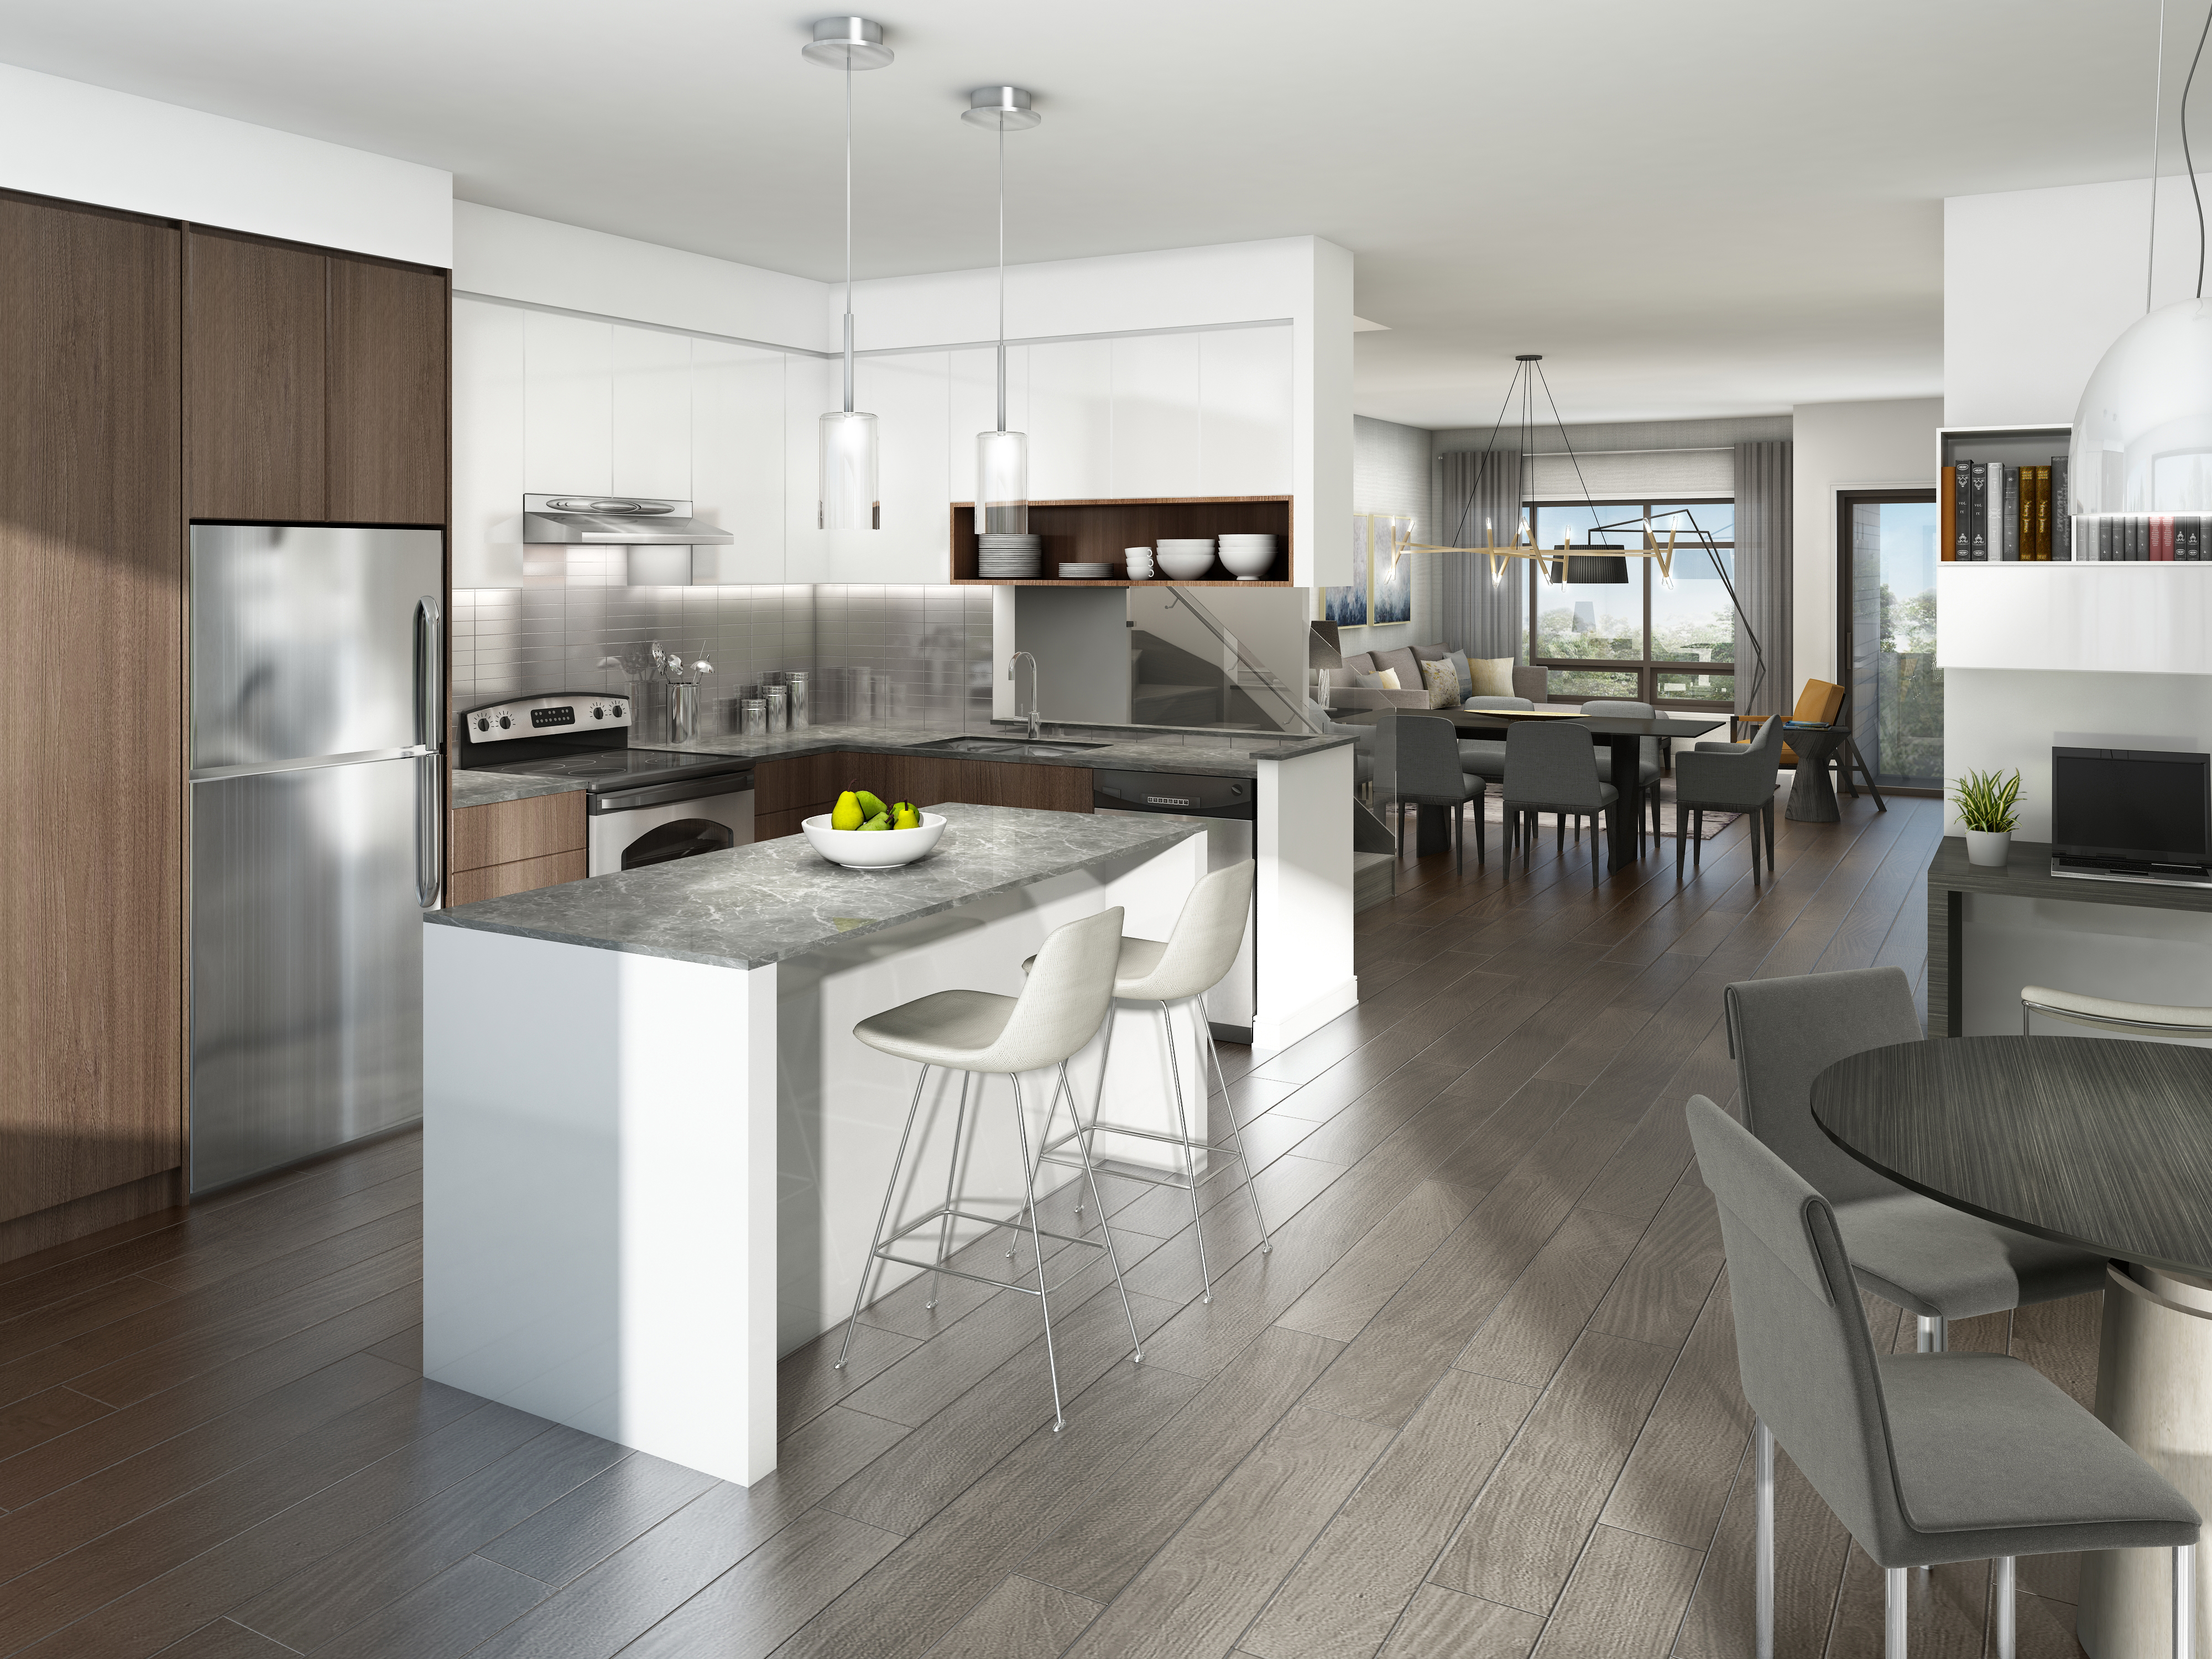 London Collection – Chef's kitchen features sleek stainless steel appliances, stunning backsplash and a quartz-topped breakfast bar